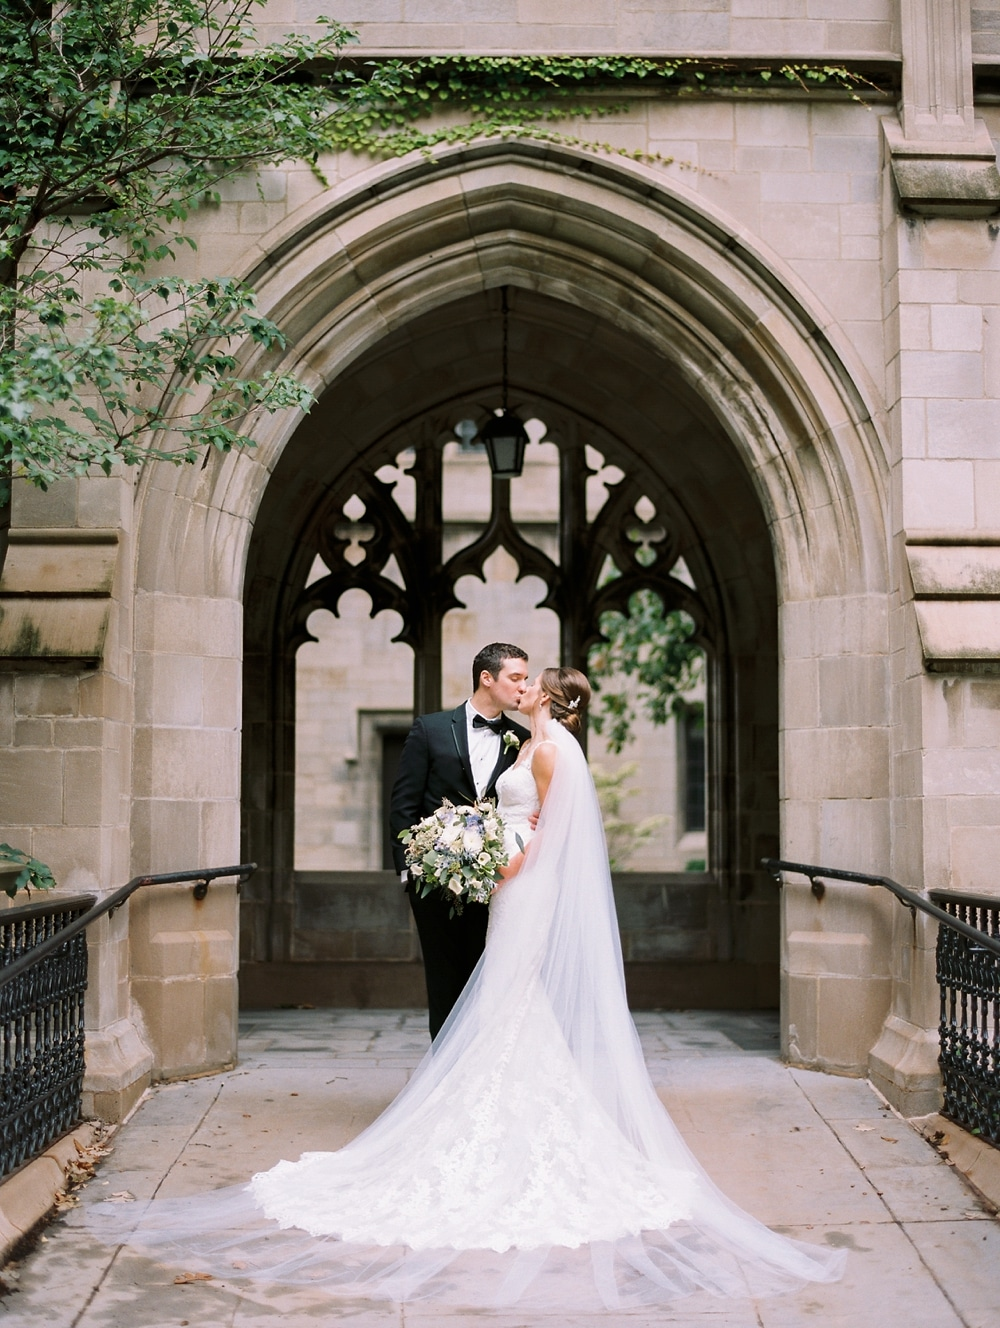 kristin-la-voie-photography-university-of-chicago-wedding-bridgeport-art-center-bond-chapel-147